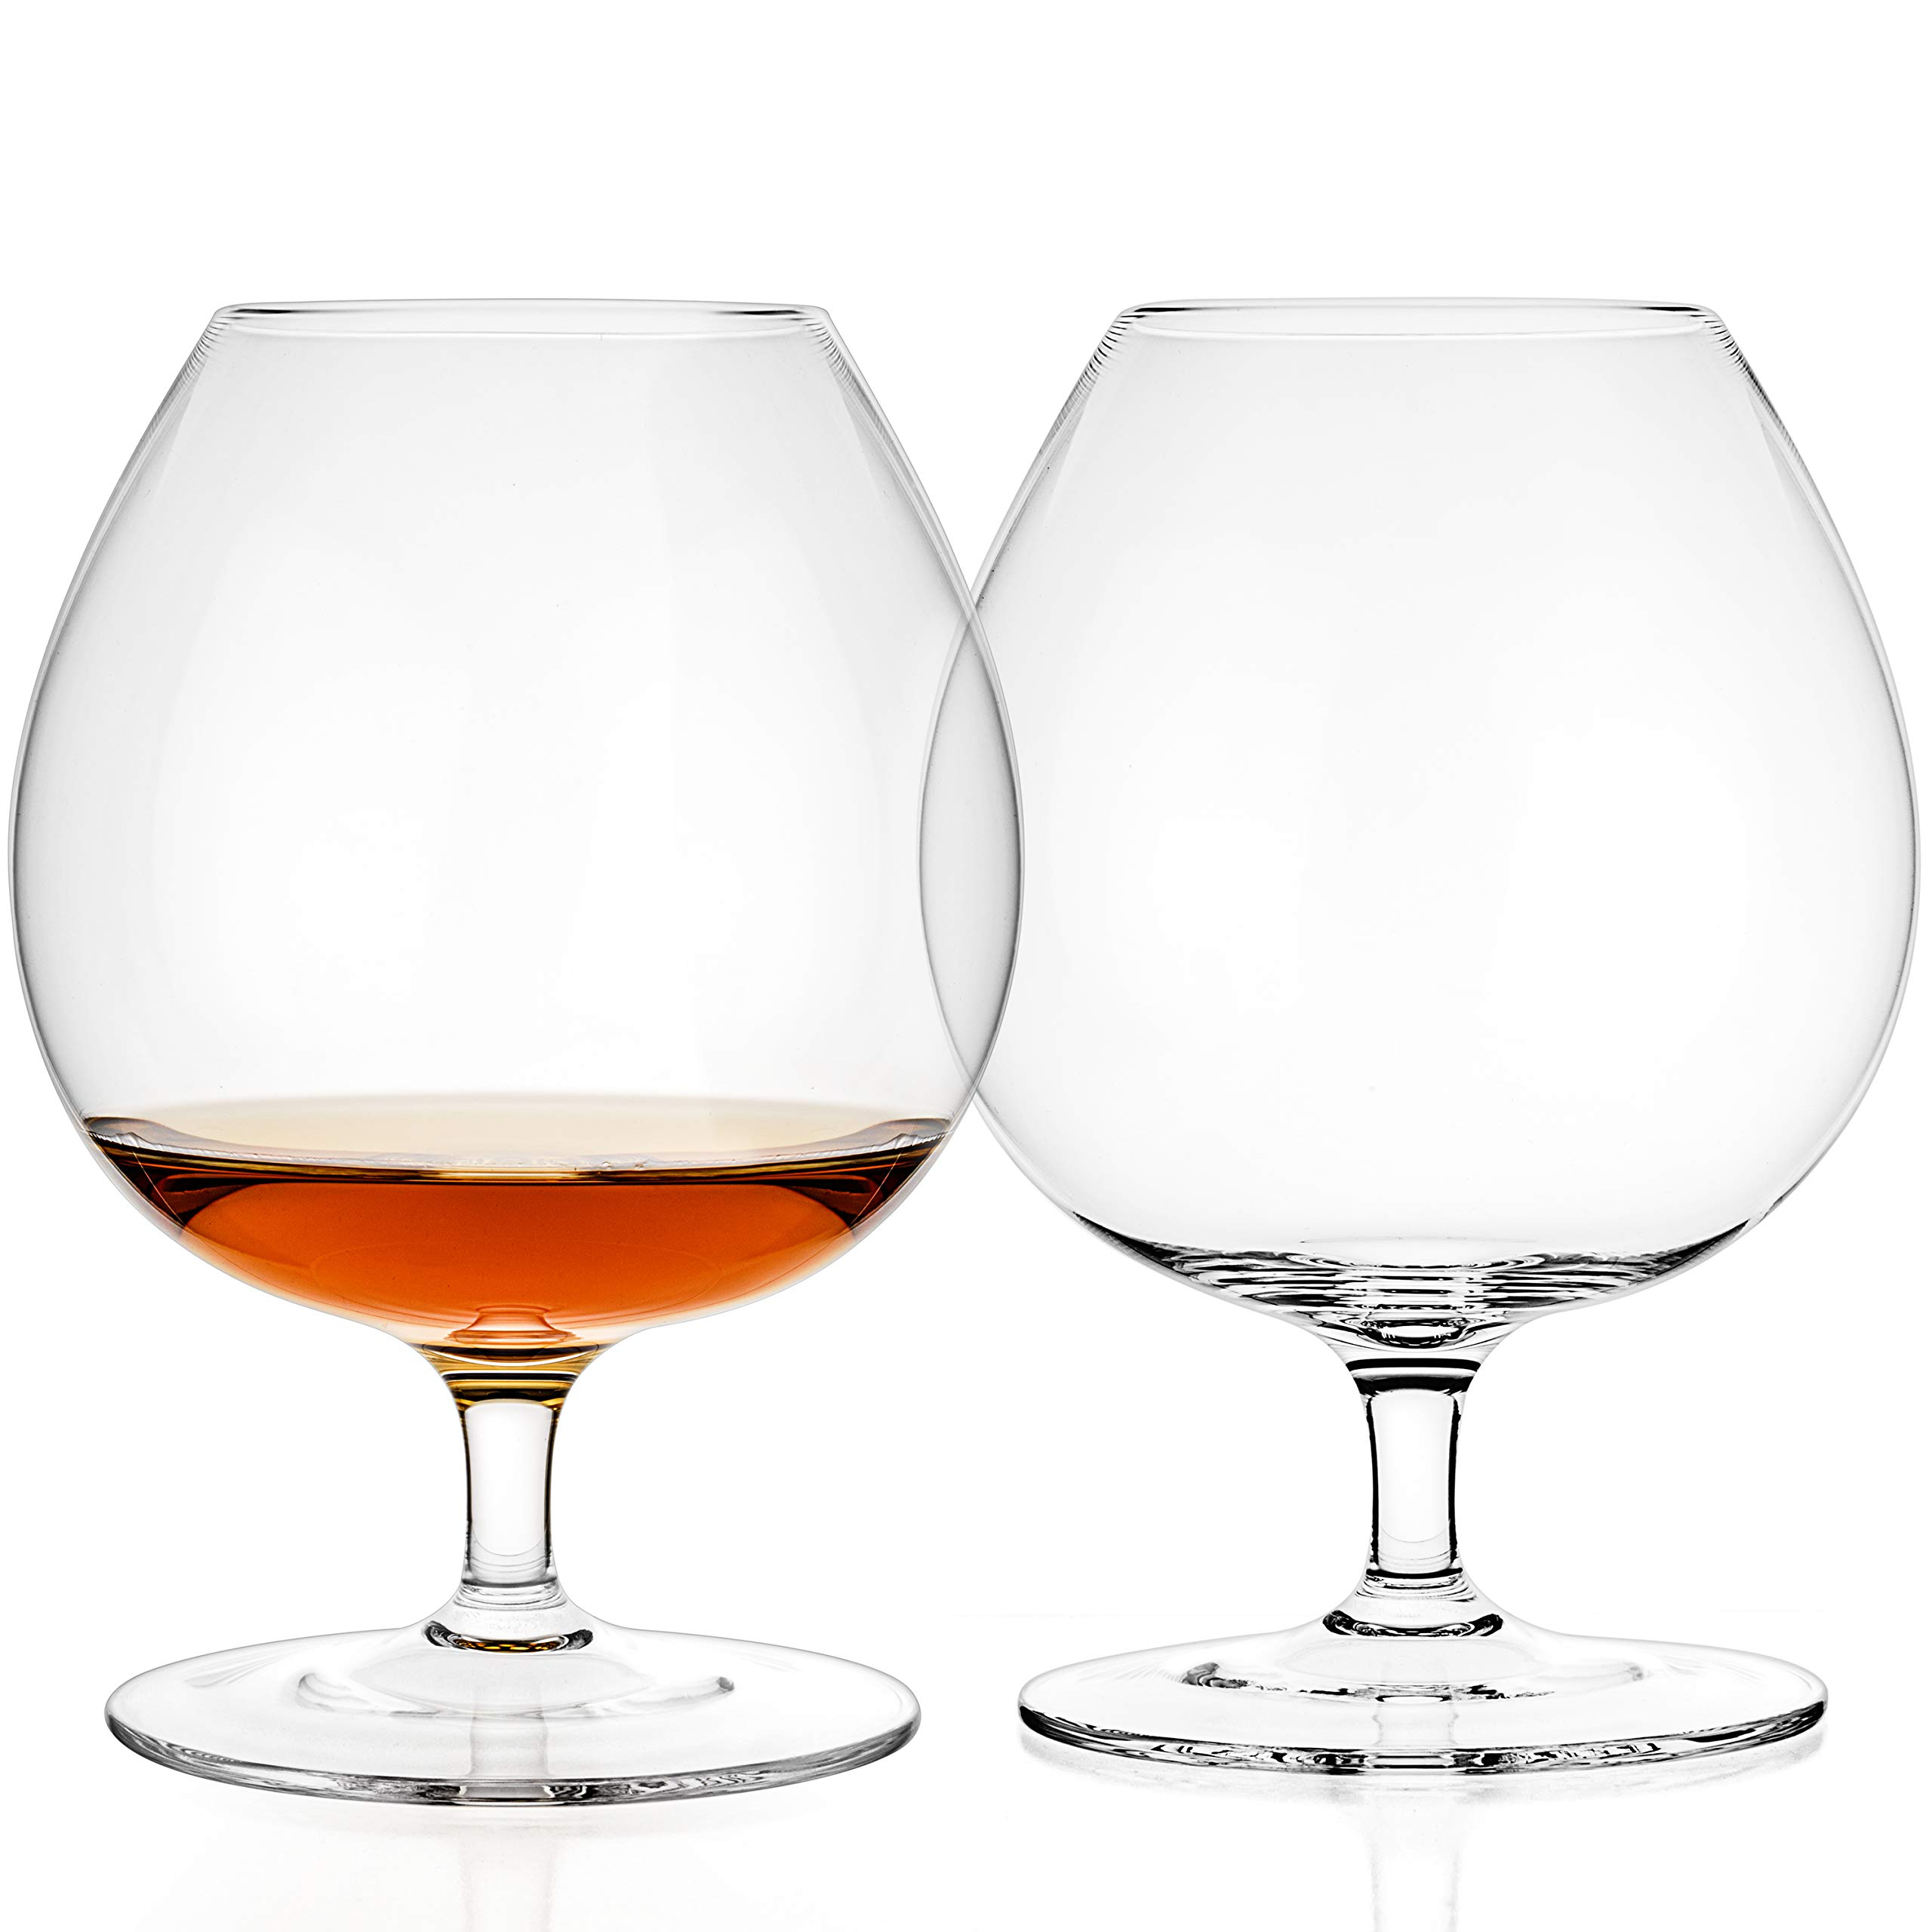 Luxbe - Brandy & Cognac Crystal Glasses Snifter, Set of 2 - Large Handcrafted - 100% Lead-Free Crystal Glass - Great for Spirits Drinks - Bourbon - Wine - 25.5-ounce by Luxbe